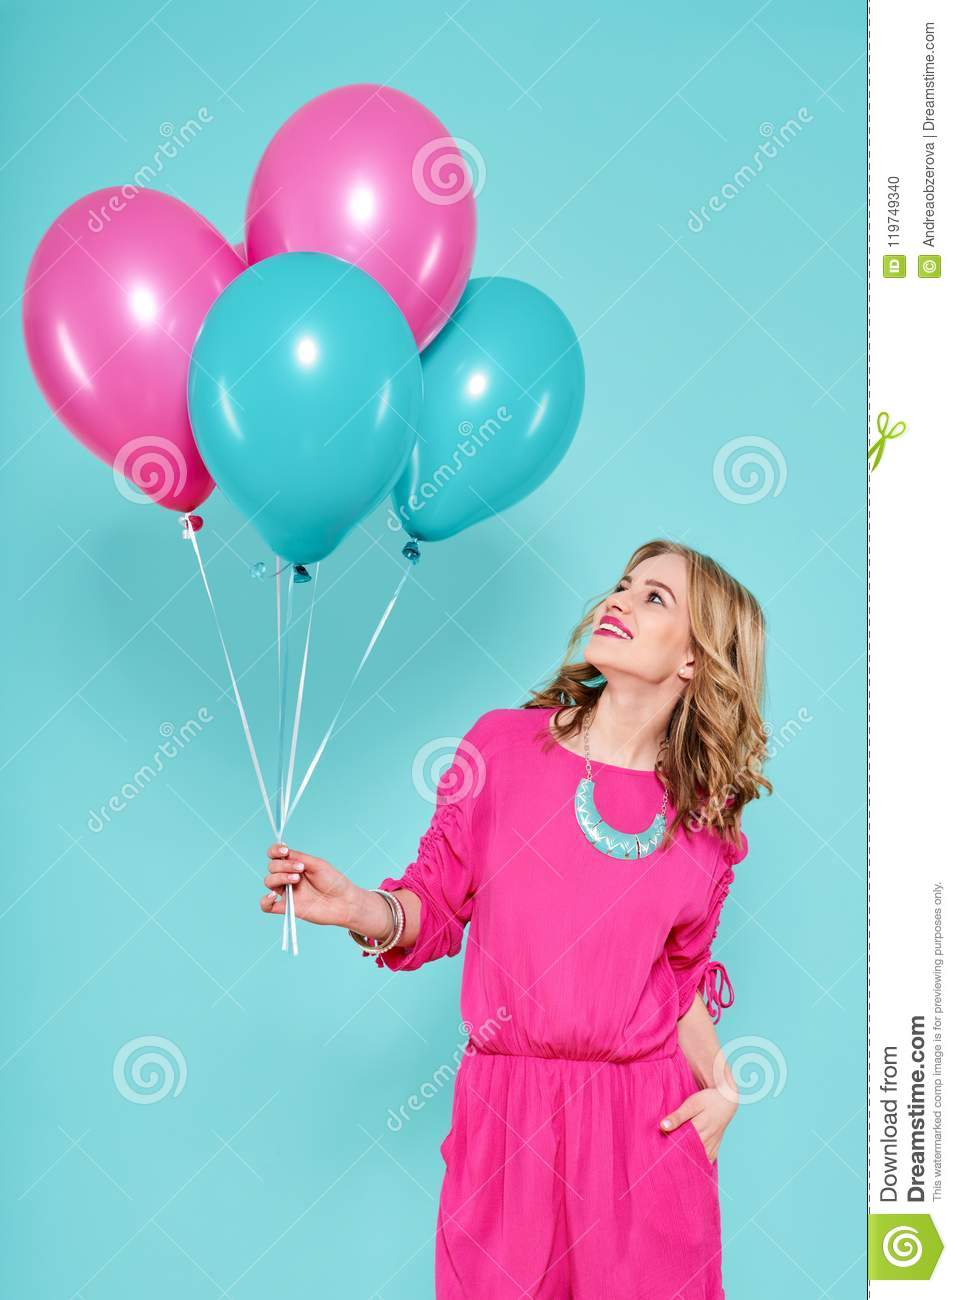 Gorgeous young woman in party summer dress holding bunch of colourful balloons, isolated over pastel blue colored background.